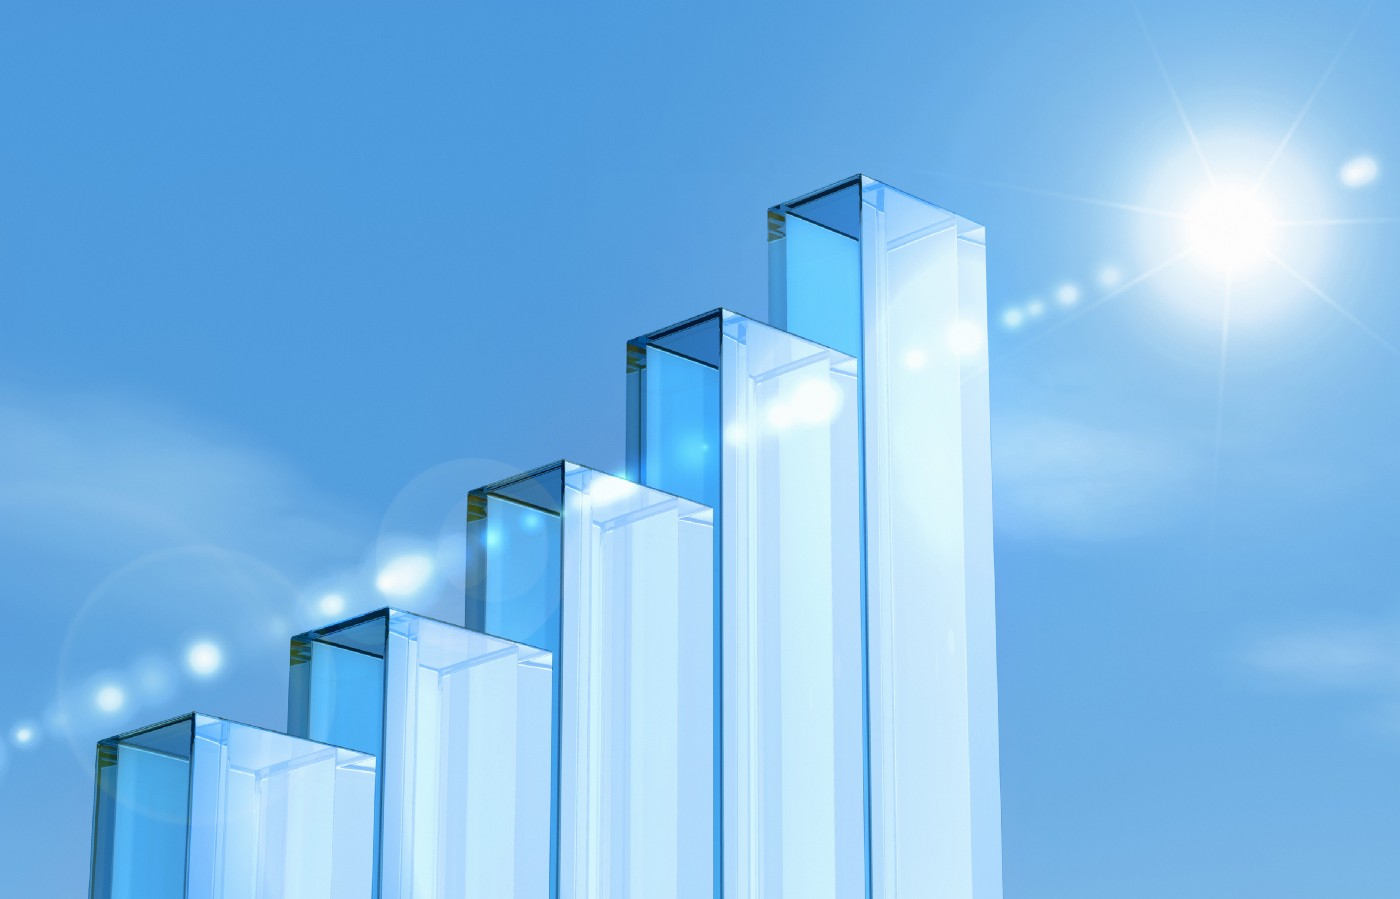 glass pillars forming a bar chart, blue sky and shining sun in the background